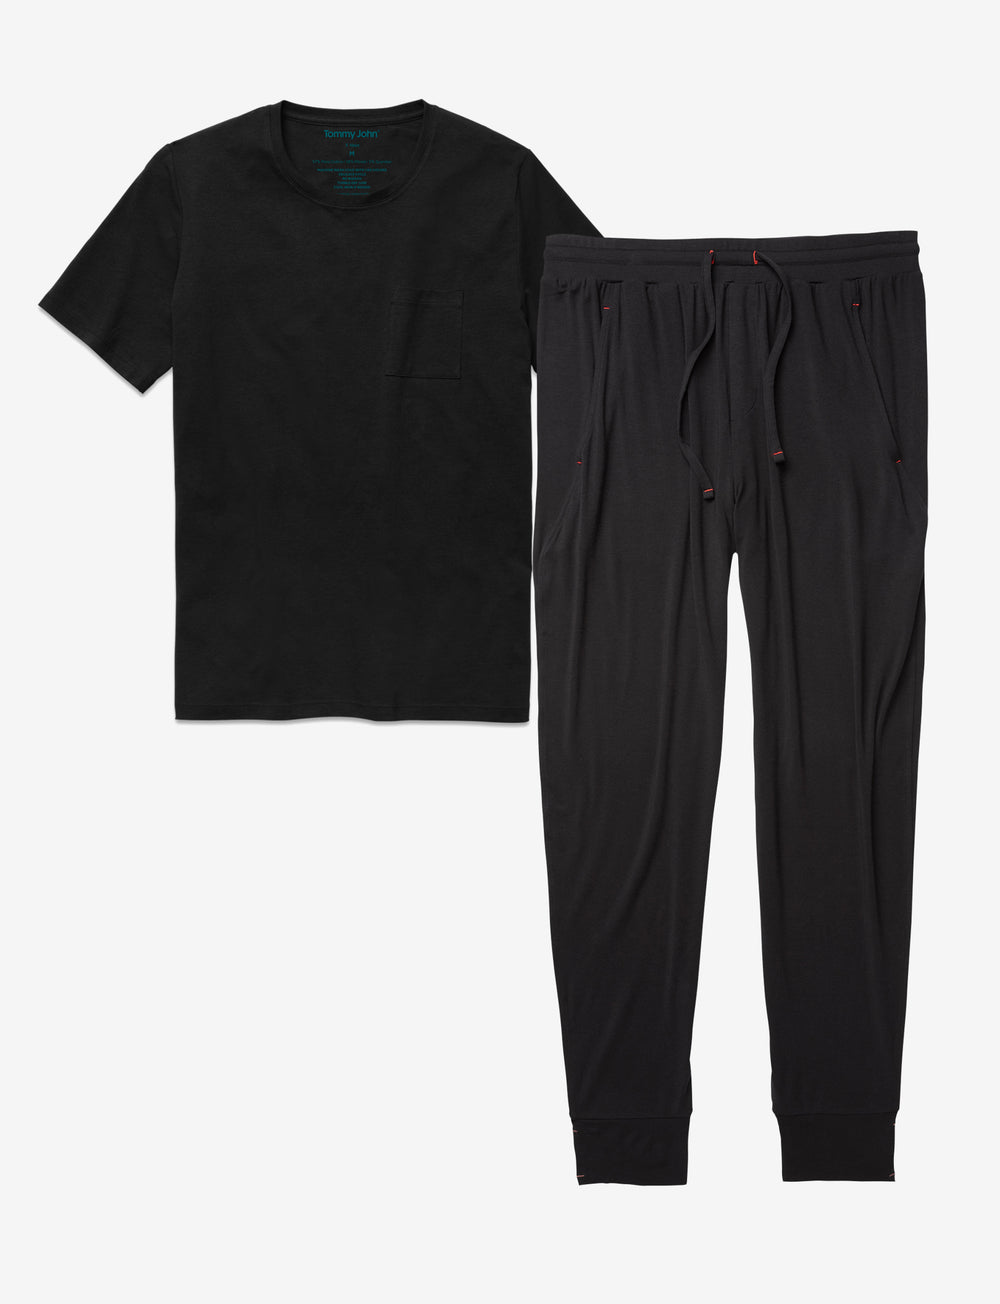 Lounge Jogger and Tee Pack Details Image